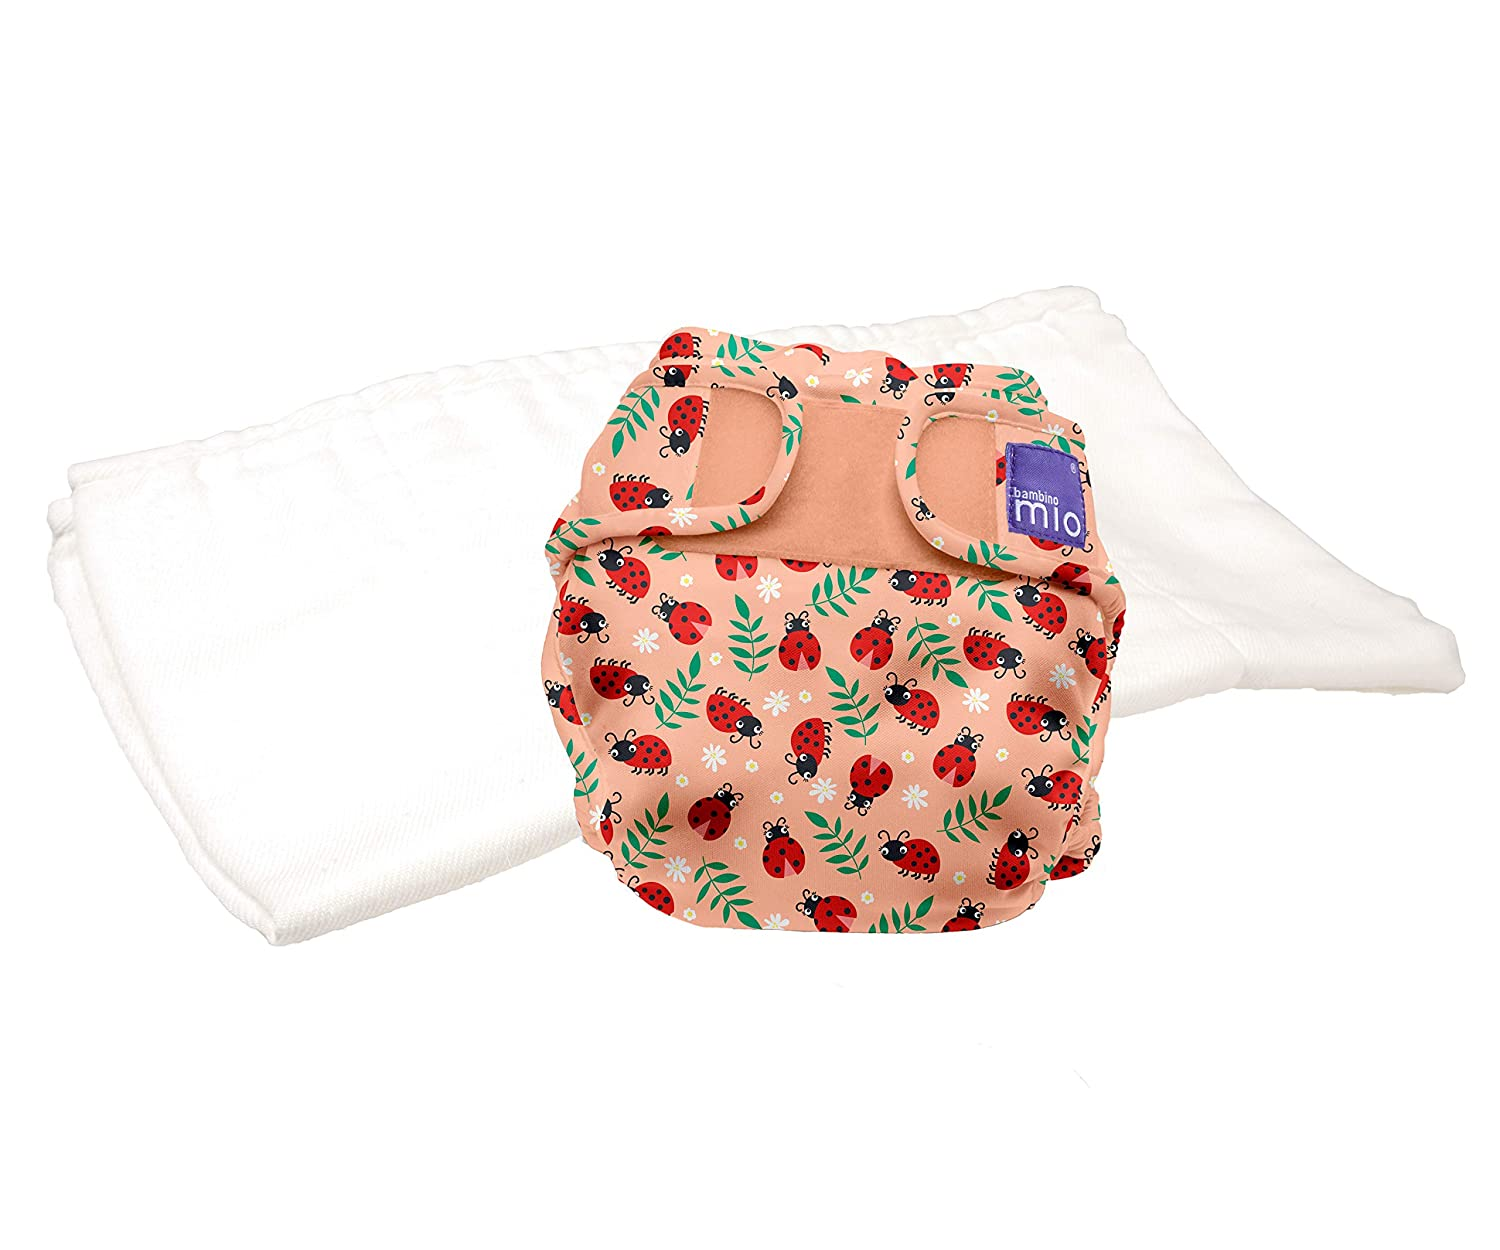 Trial Pack Jungle Snake Size 1 Bambino Mio Miosoft Two-Piece Diaper